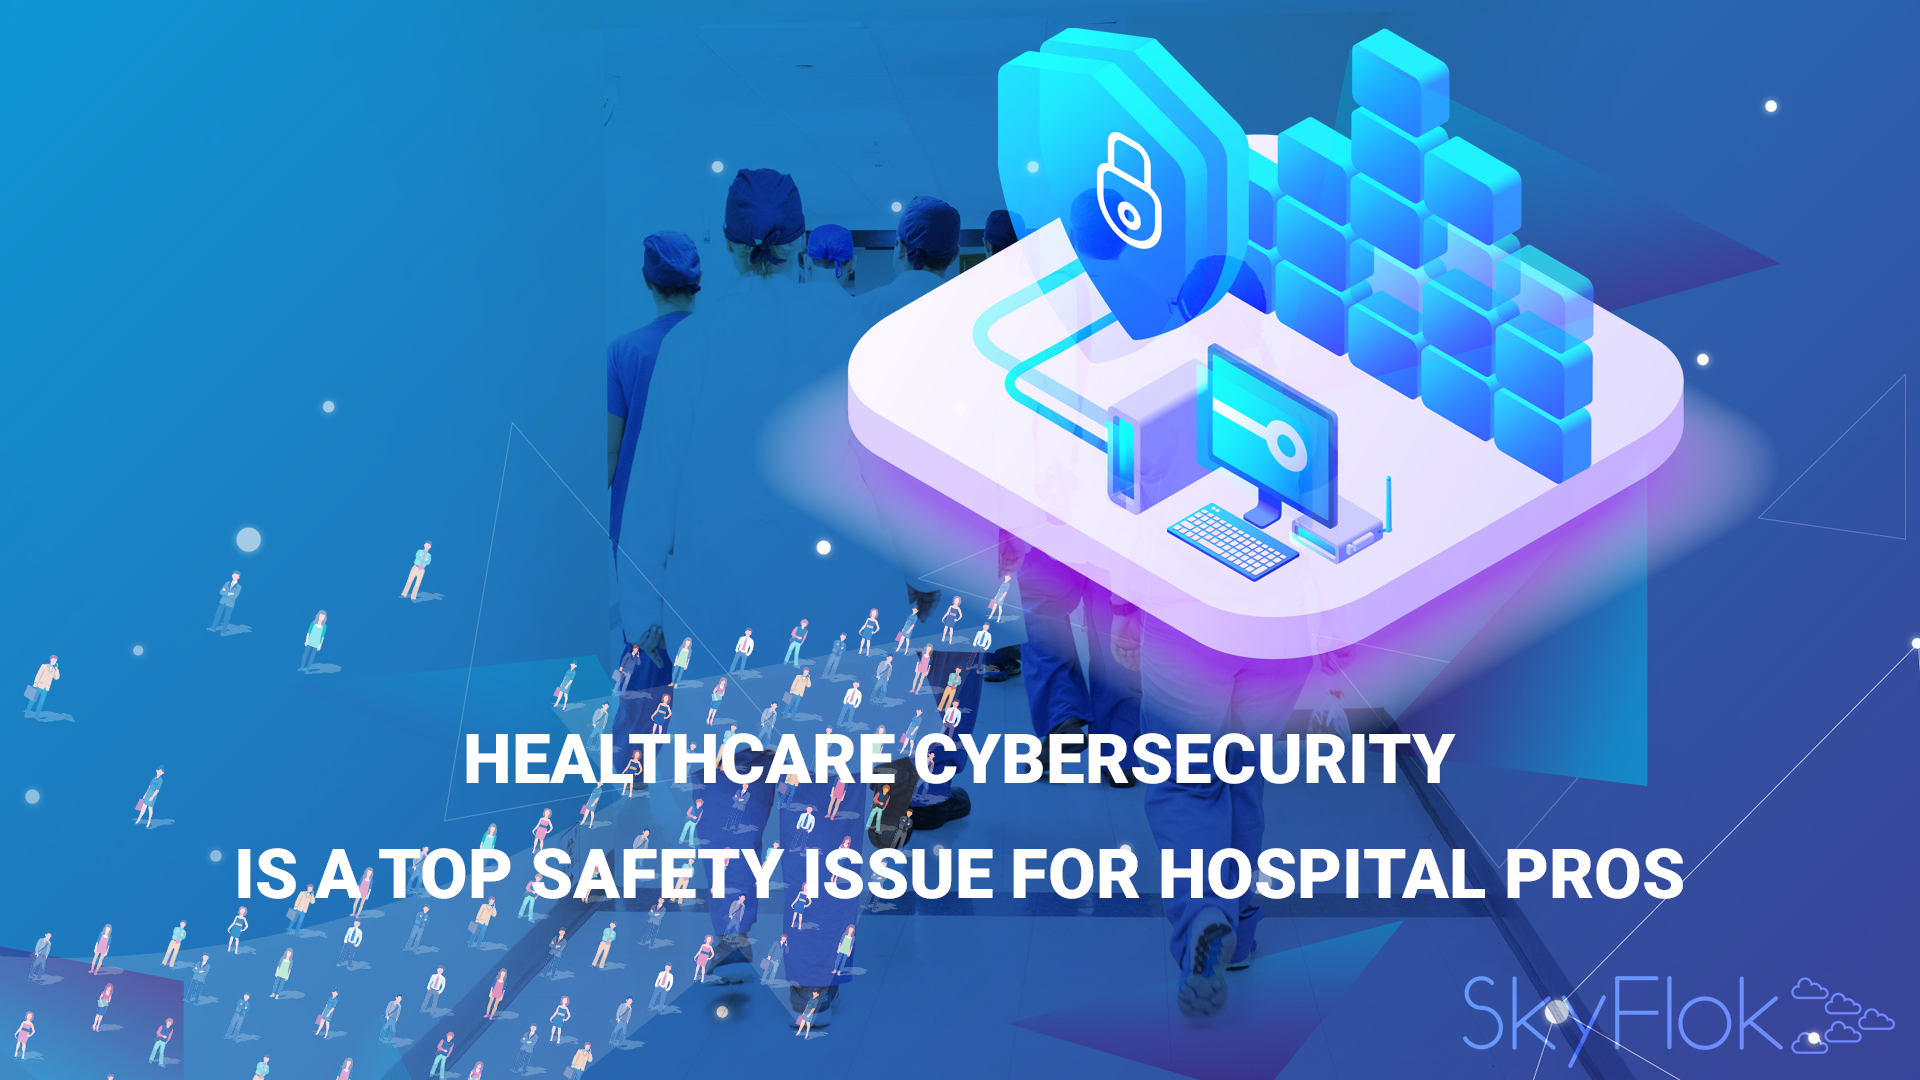 Healthcare Cybersecurity Is a Top Safety Issue for Hospital Pros